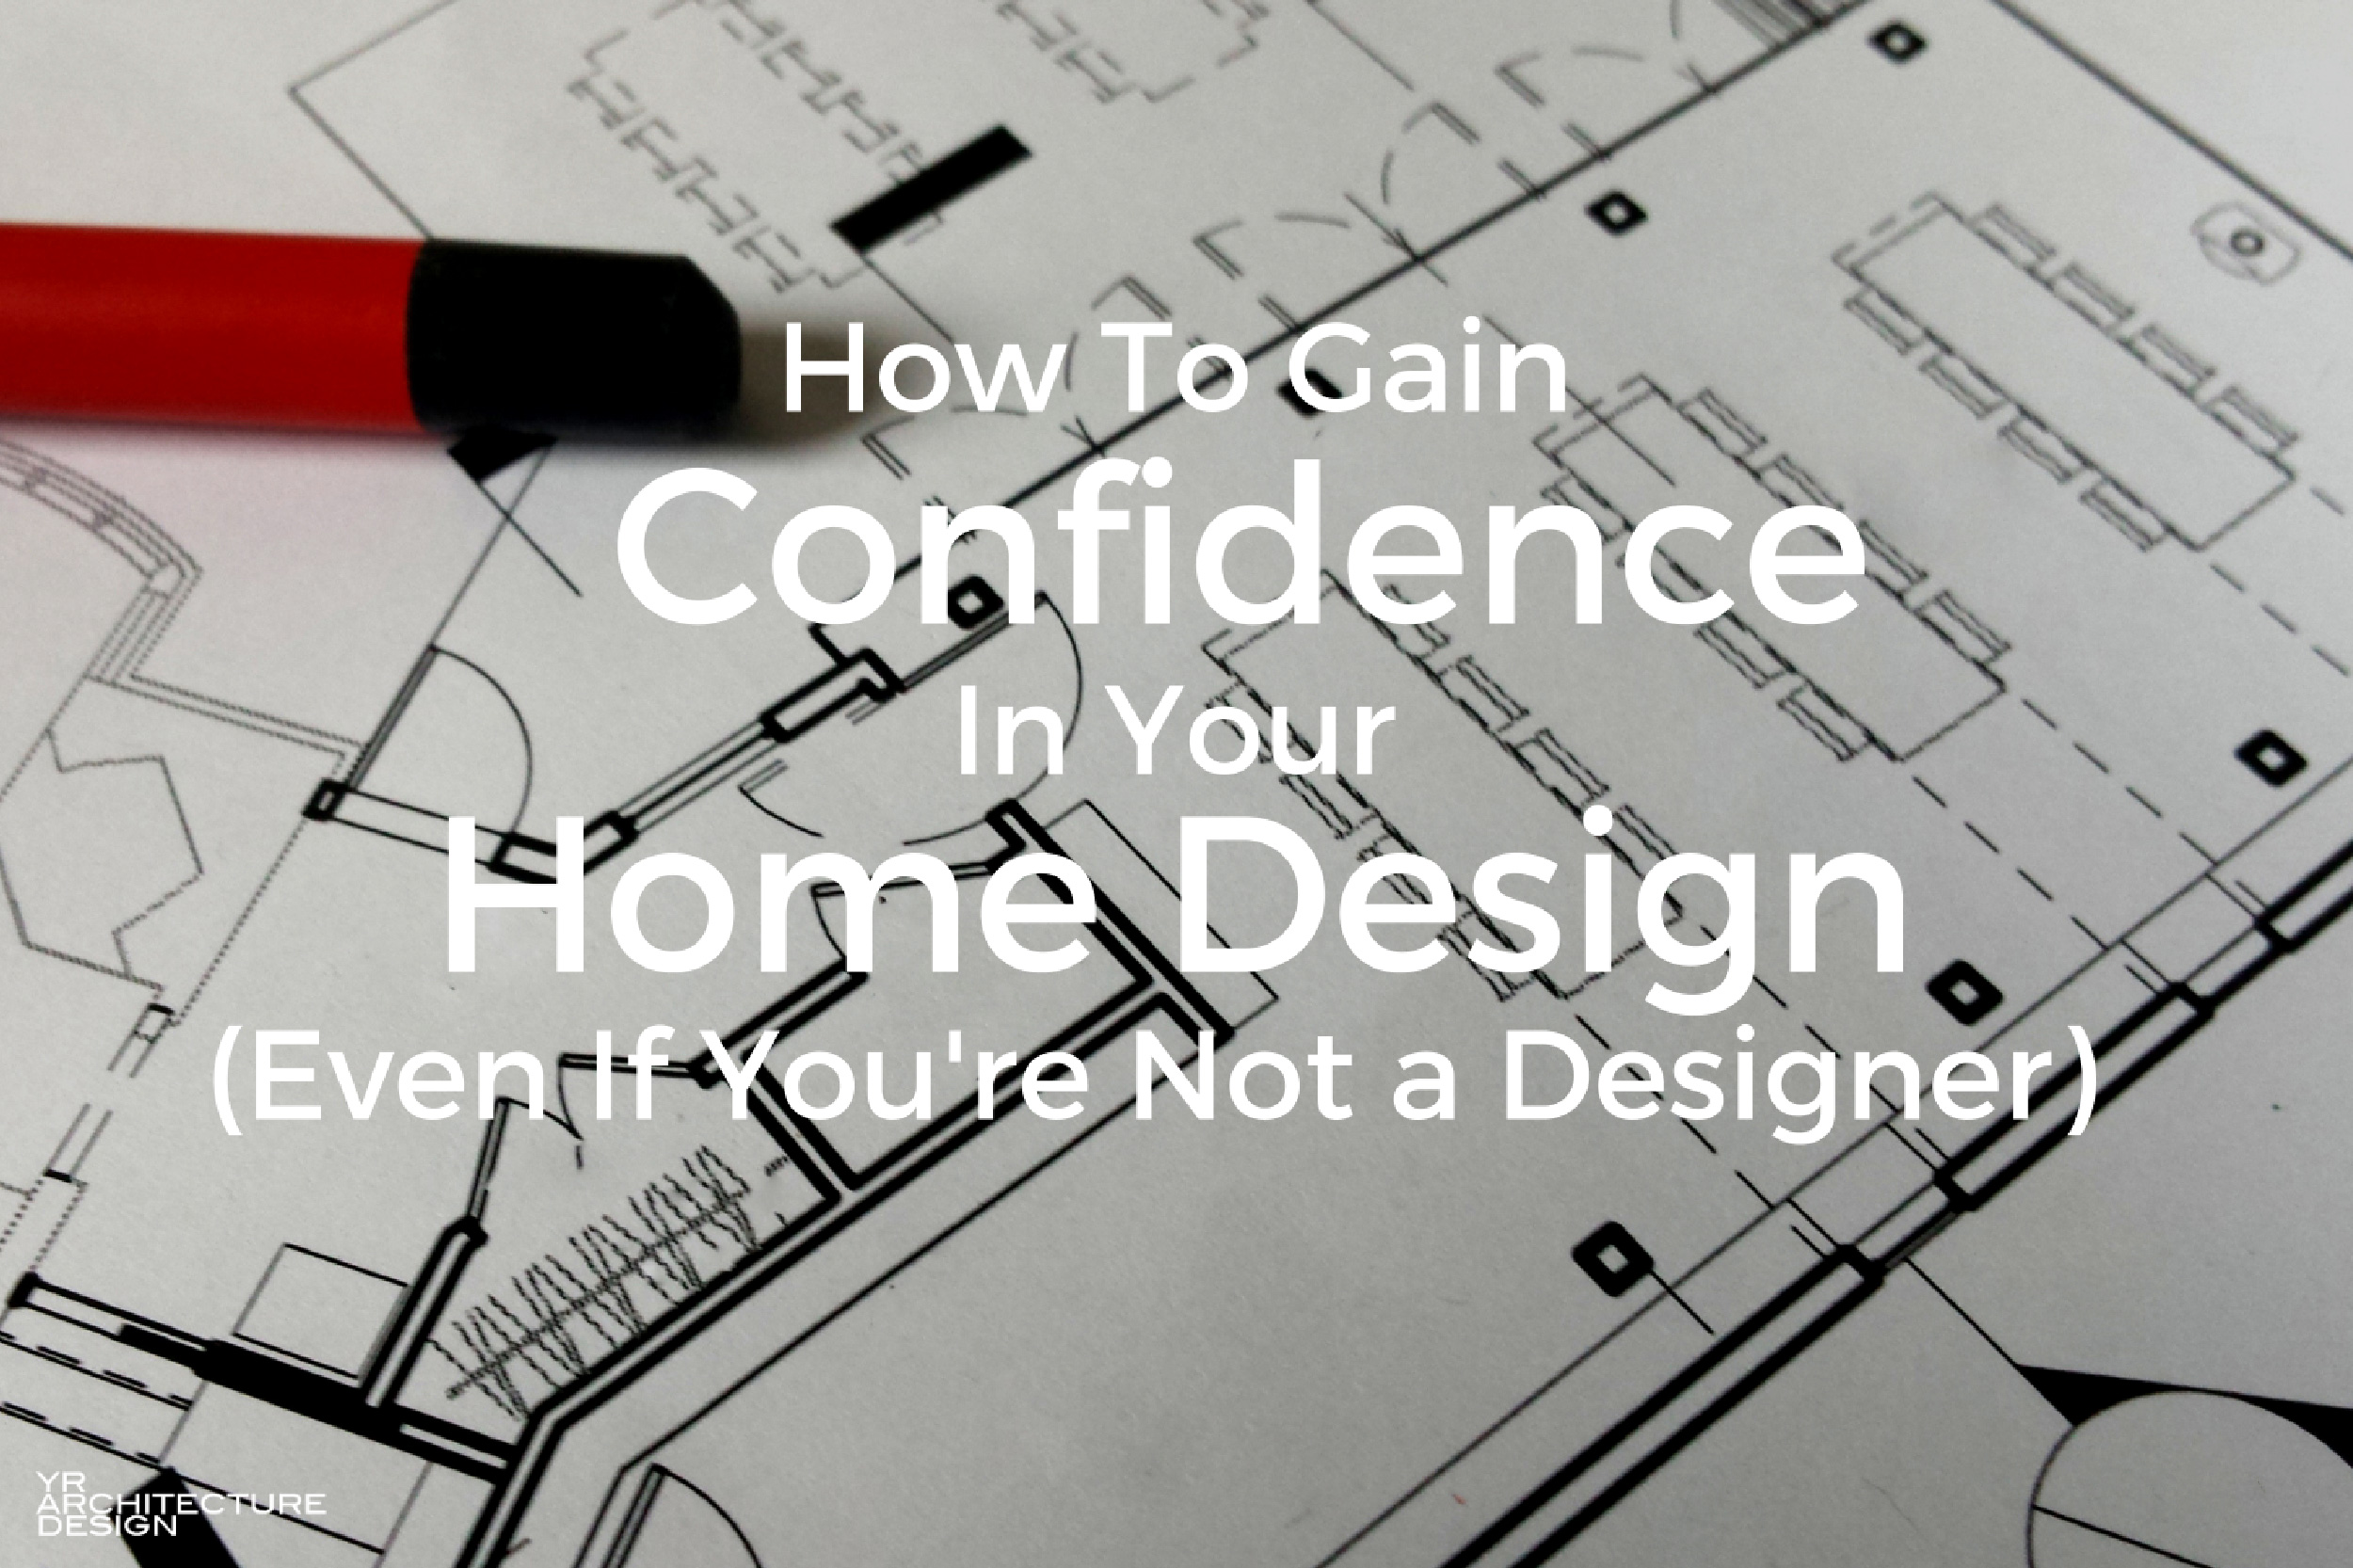 Home Design Review: How To Gain Confidence In Your Home Design